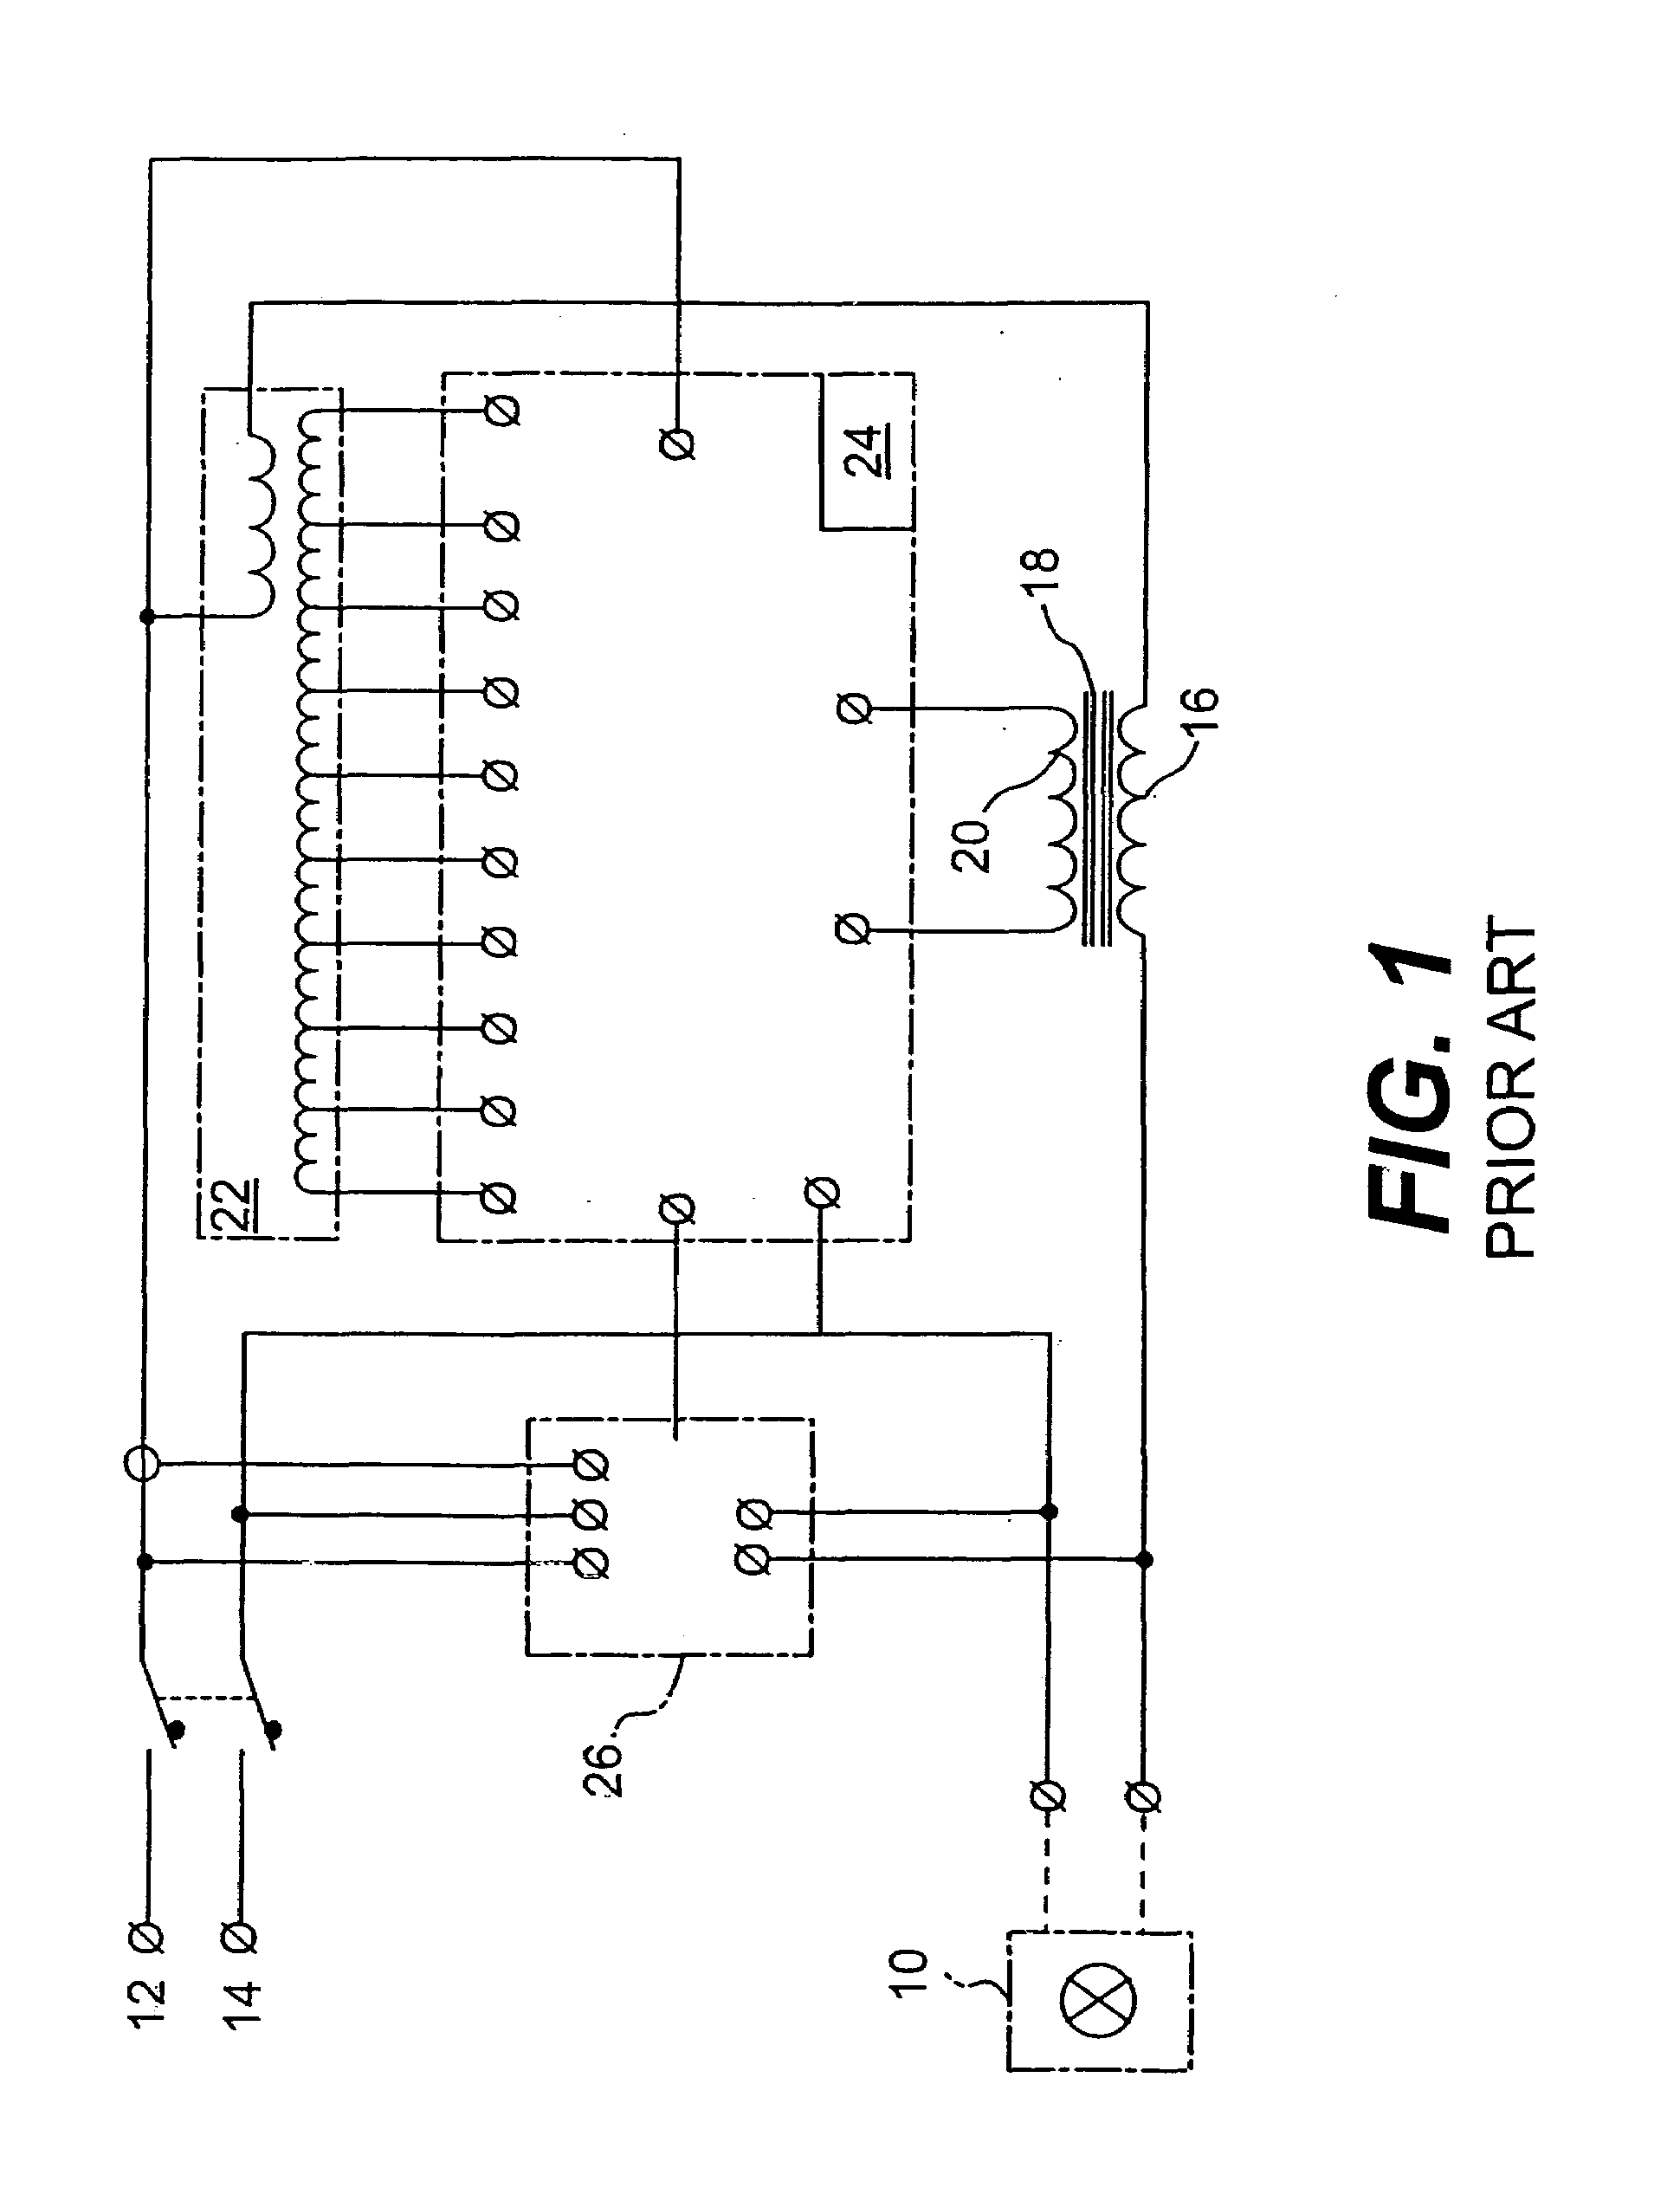 Diagram Wiring Diagram For Contactor And Photocell Full Version Hd Quality And Photocell Pdfkalender Aquarelle Textile Fr